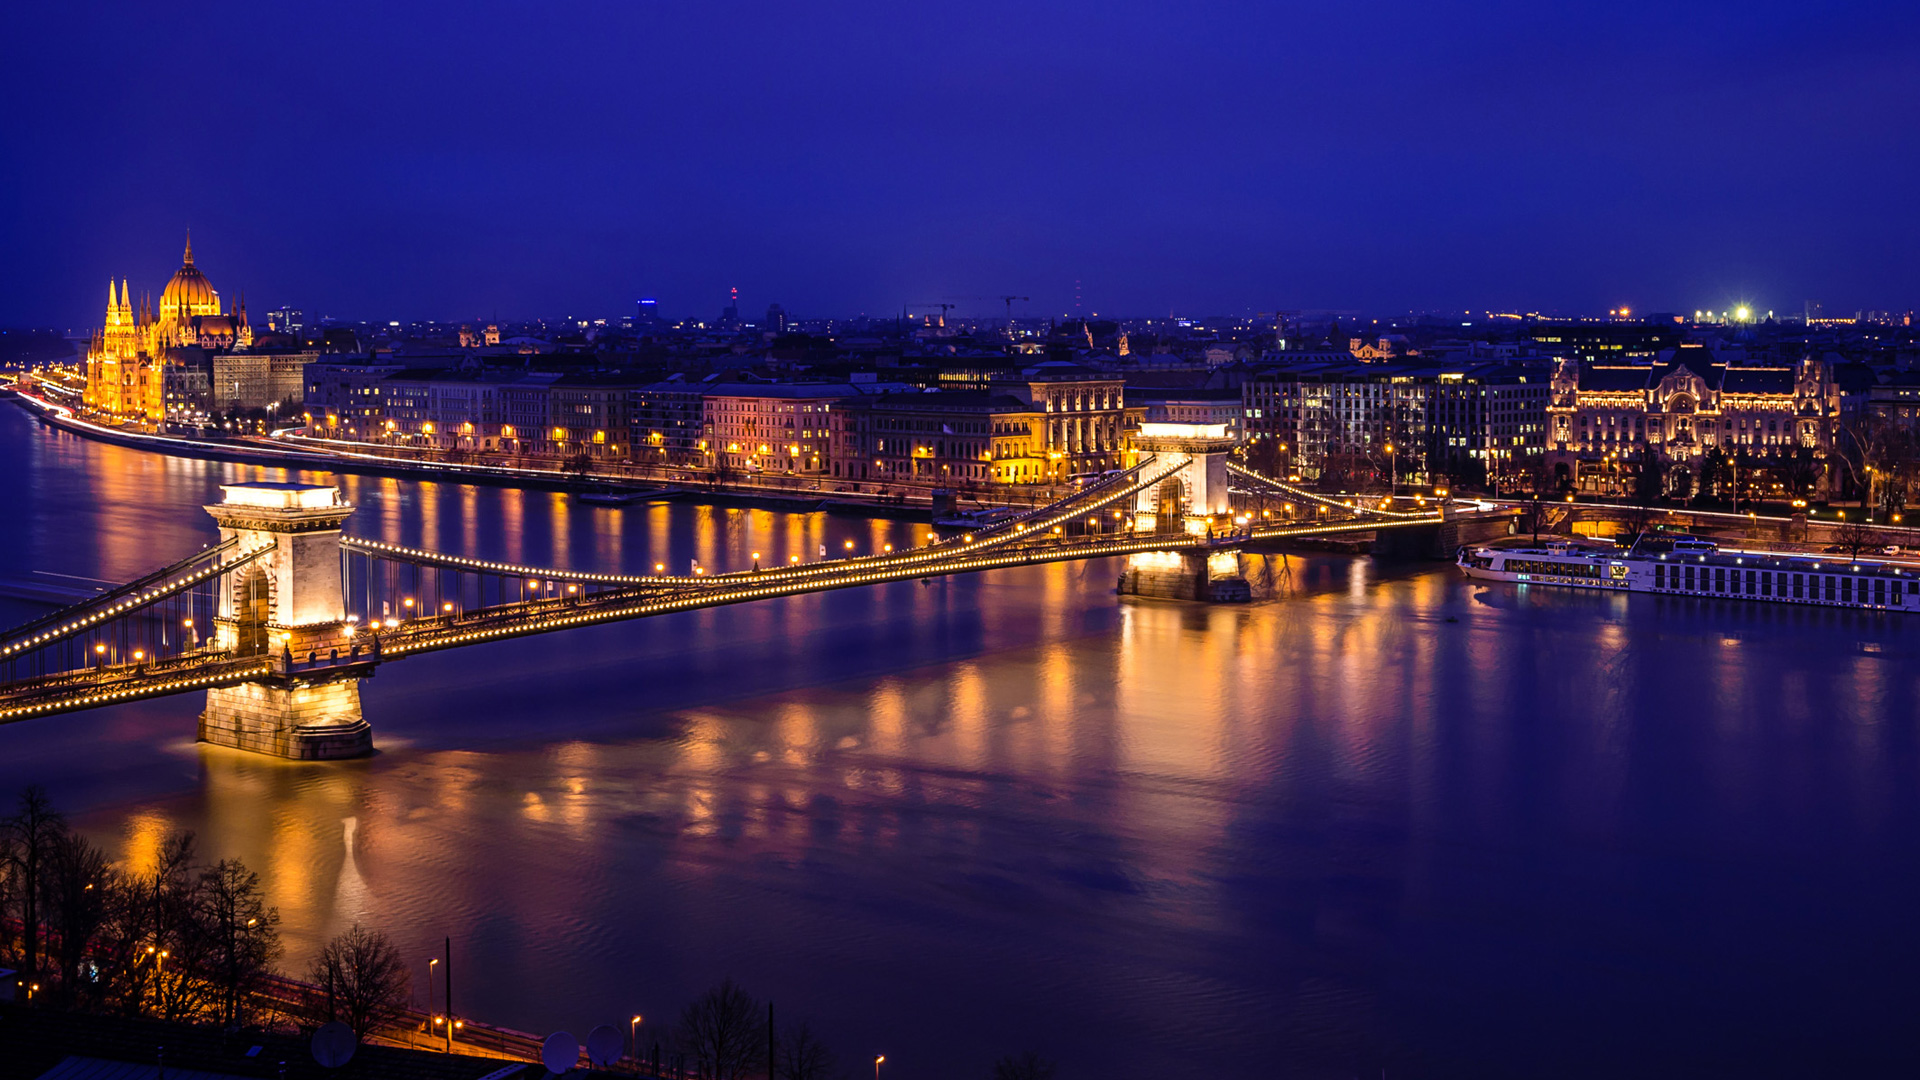 budapest pictures full hd wallpapers